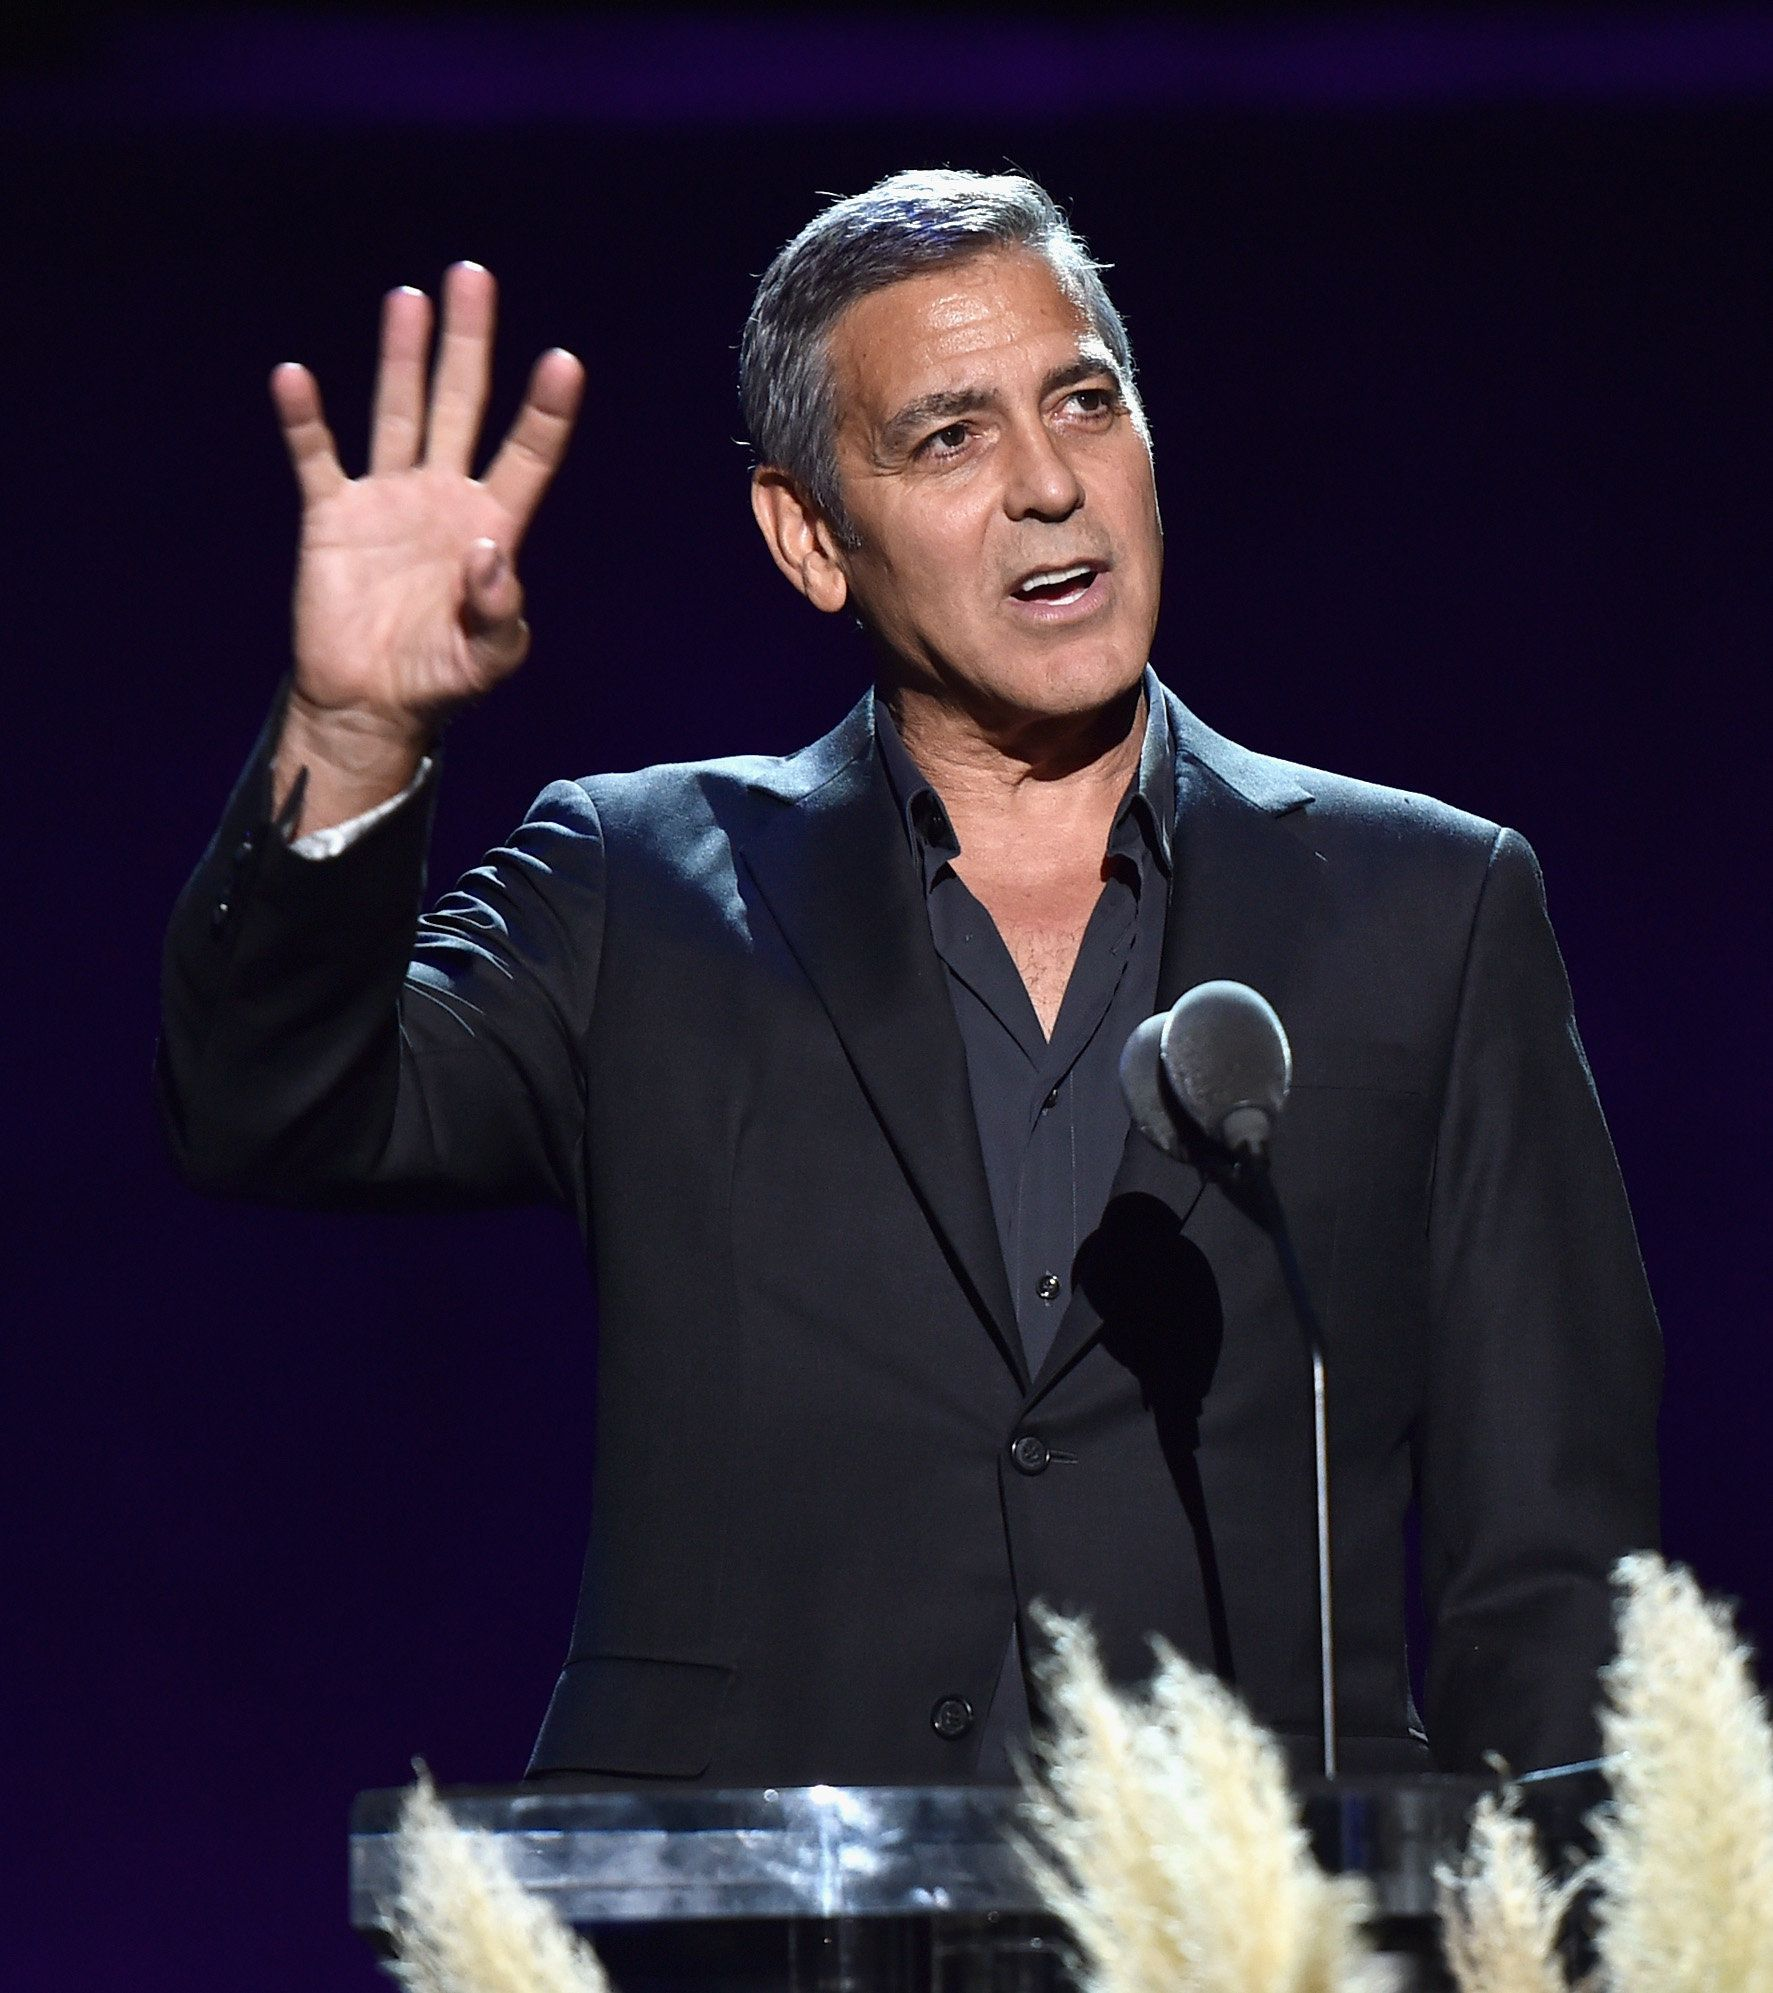 LOS ANGELES, CA - OCTOBER 01:  Host George Clooney speaks onstage during the MPTF 95th anniversary celebration with 'Hollywood's Night Under The Stars' at MPTF Wasserman Campus on October 1, 2016 in Los Angeles, California.  (Photo by Alberto E. Rodriguez/Getty Images for MPTF)